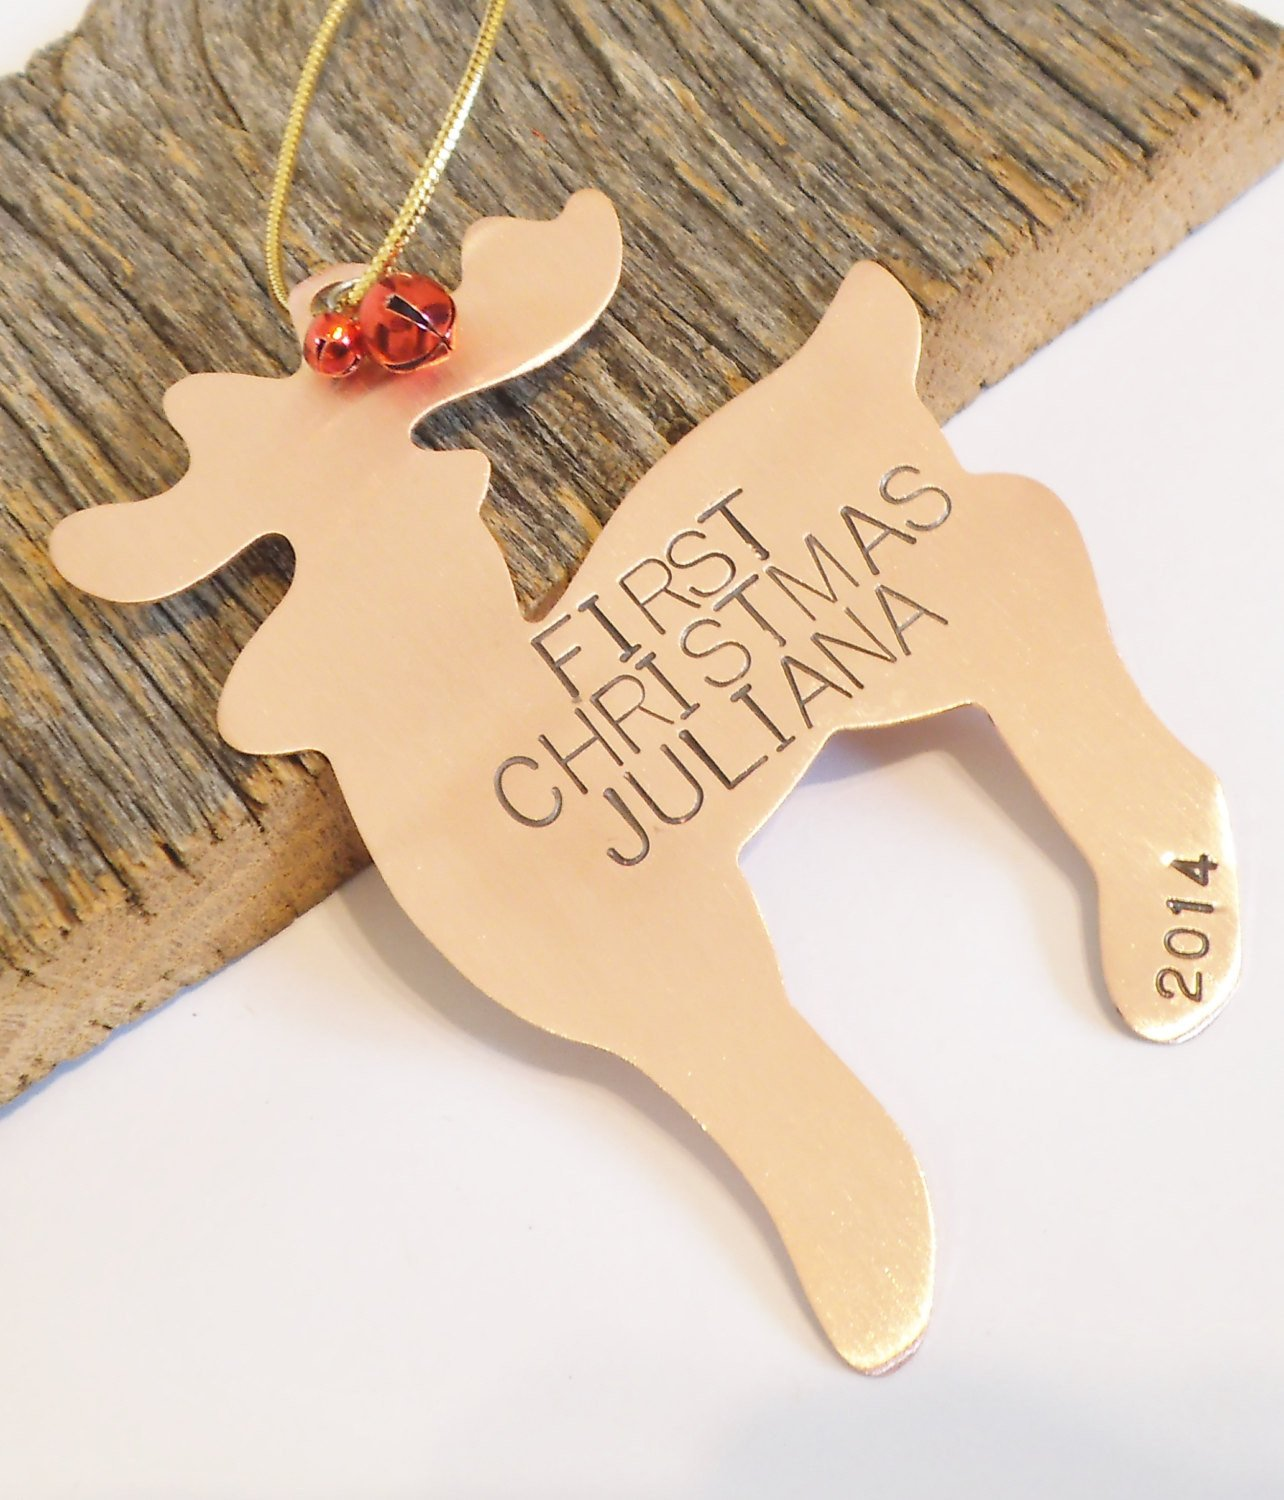 Copper Ornament Reindeer Ornament Holiday Home Decor Child's First Christmas Door Hanger Baby Announcement Wildlife Ornament Animal Ornament